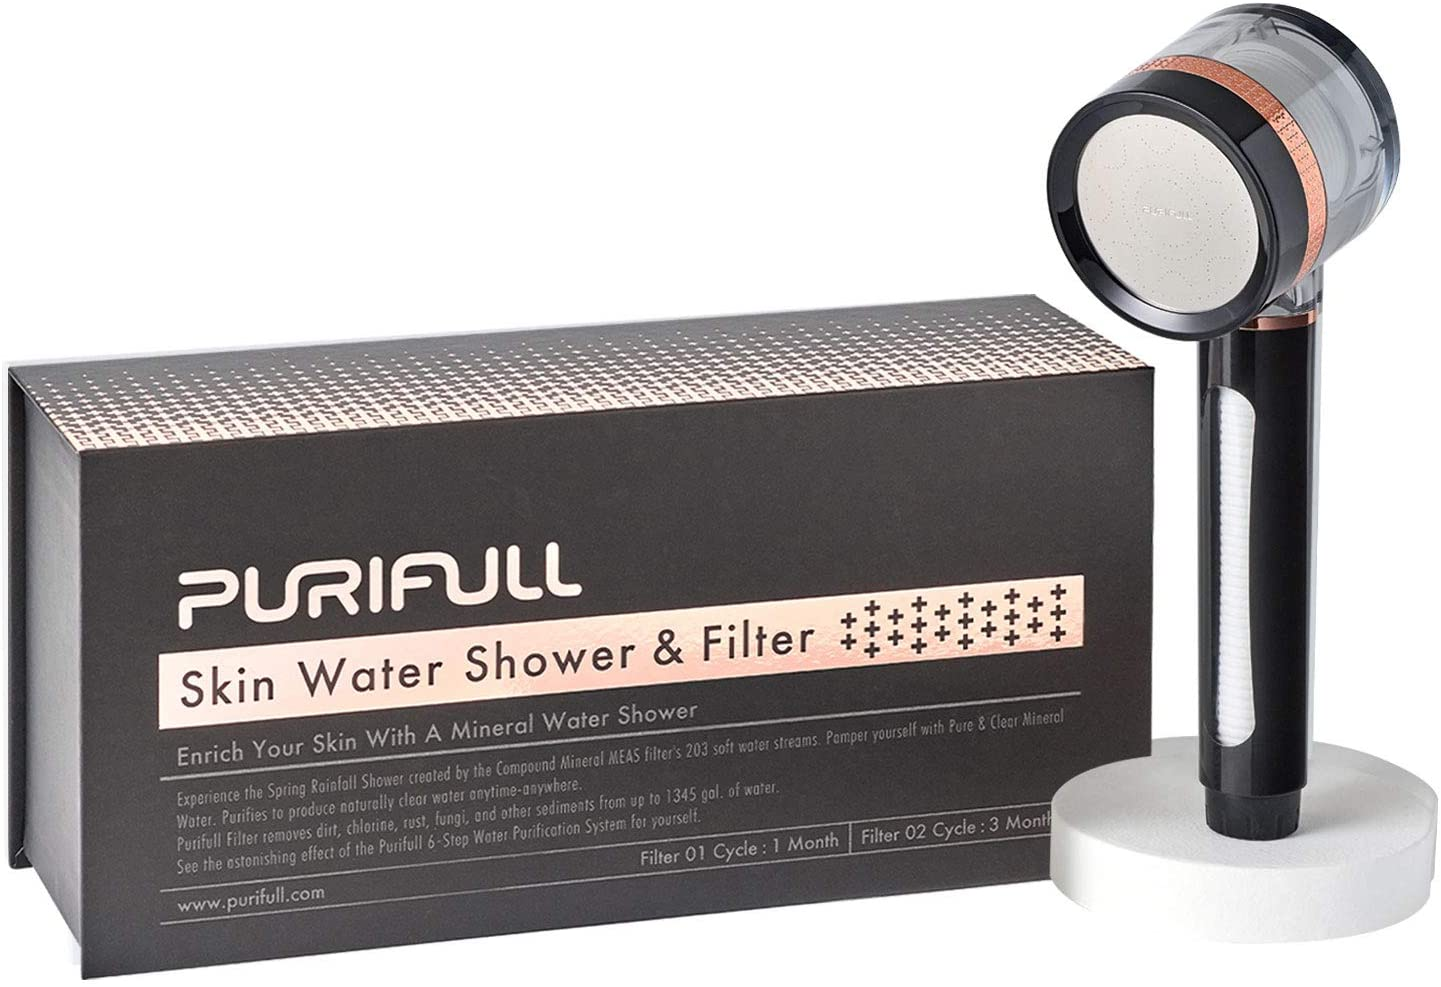 PURIFULL Mineral Skin Water Luxury All-in-1 Handheld Shower Head + Built-in 2 Filters for Chlorine and Harmful Substances Removal & Improve Skin and Hair (ROSEGOLD BLACK)